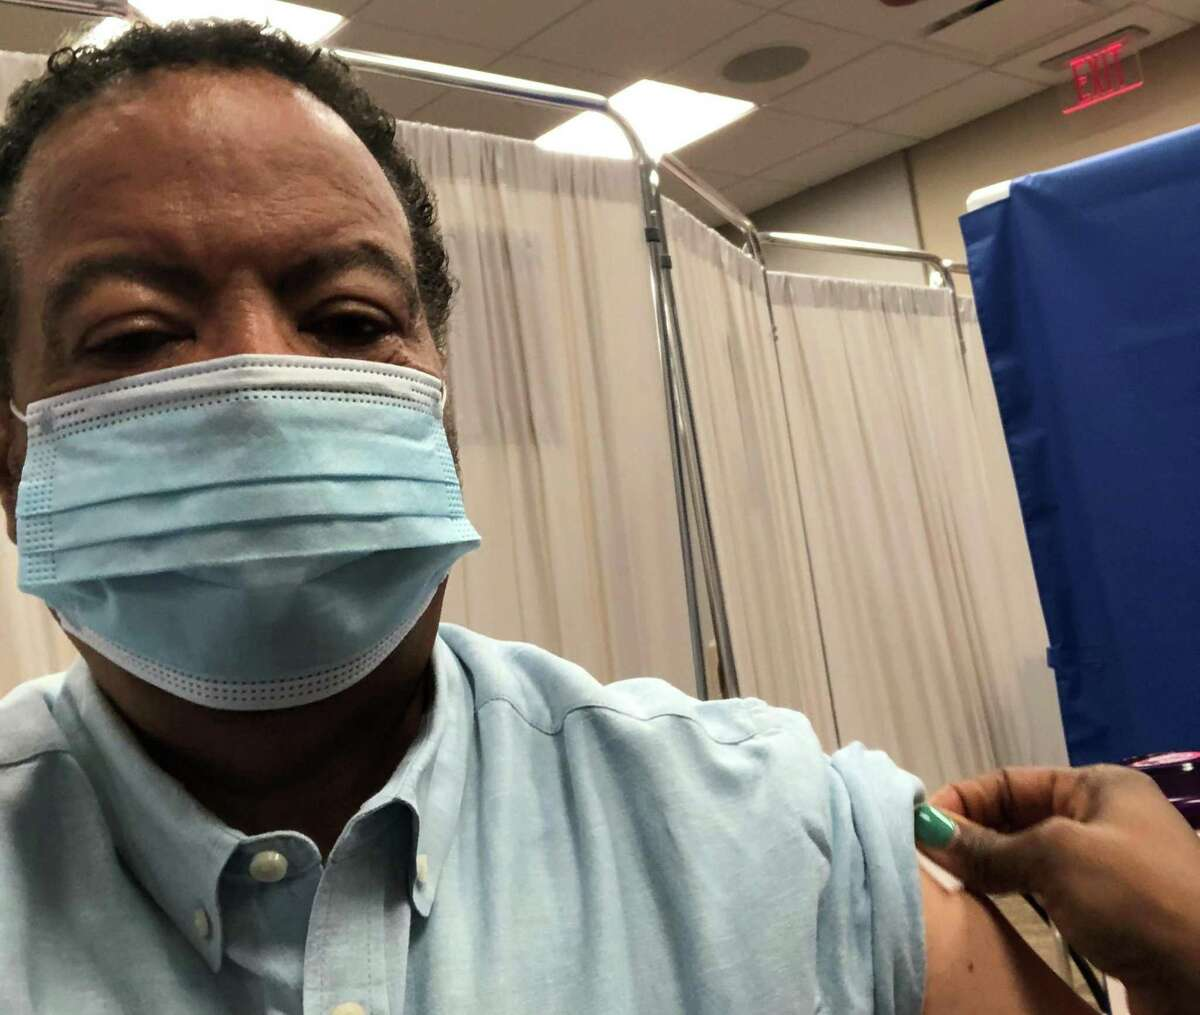 Roderic Pettigrew, CEO of Engineering Health and executive dean of Engineering Medicine (EnMed) at Texas A&M University and Houston Methodist Hospital, receives the COVID vaccine.